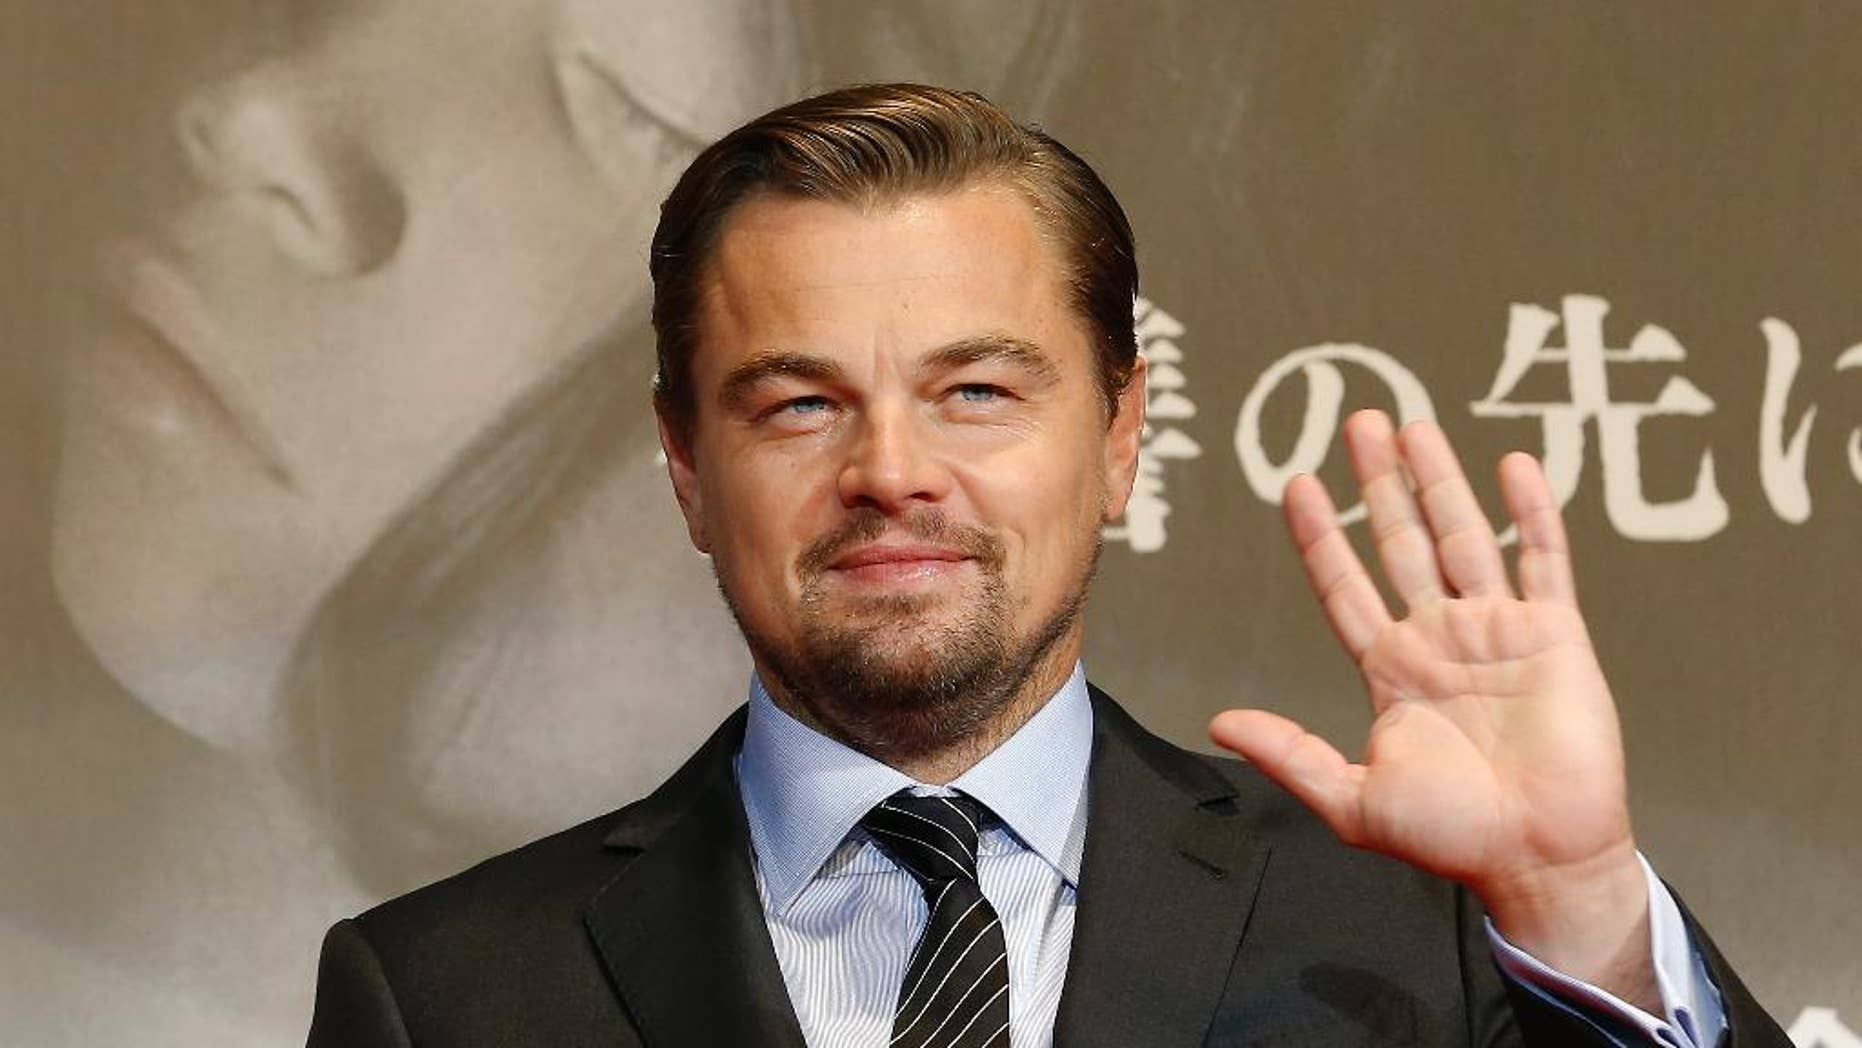 """FILE - In this March 23, 2016 file photo, American actor Leonardo DiCaprio waves for fans during the Japan premiere of his new movie """"The Revenant"""" in Tokyo, Japan. Indonesia's environment and forestry minister says Oscar-winning actor DiCaprio lacked complete information when he criticized the destruction of rainforests during a visit to a protected national park in March. His comments prompted immigration officials to warn that DiCaprio could be barred from reentering Indonesia, but the minister, Siti Nurbaya, said she appreciates his good intentions and hopes to cooperate with him in future. (AP Photo/Shizuo Kambayashi, File)"""